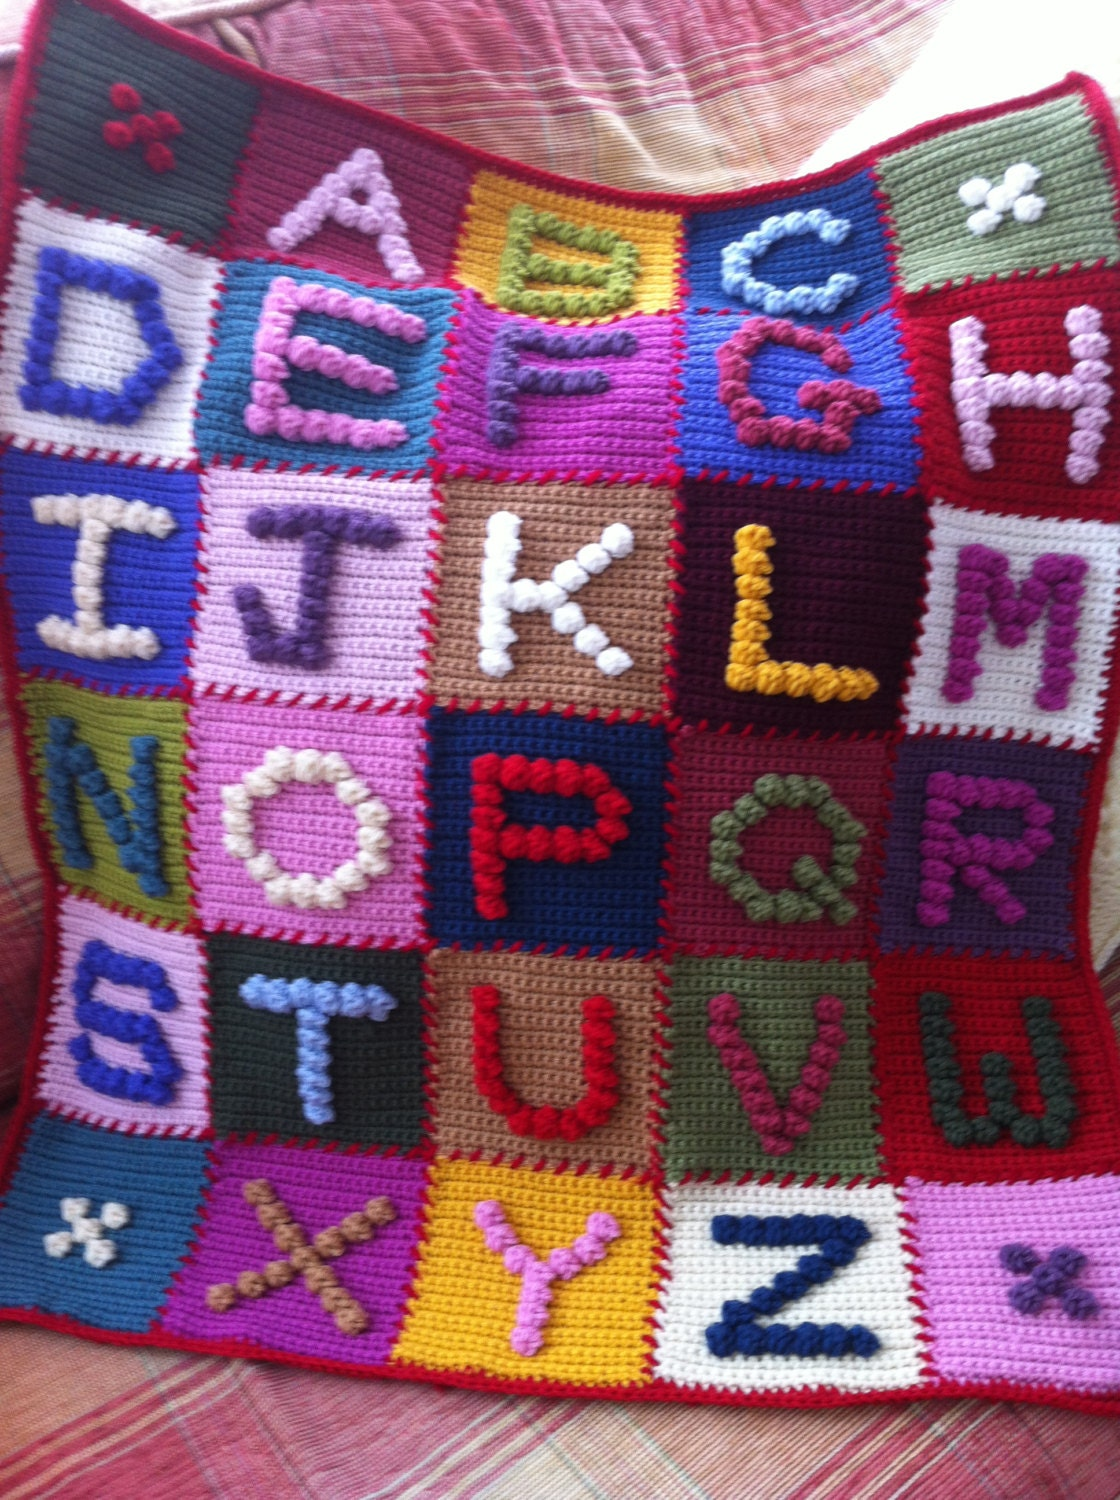 Crocheting Letters Into Blankets : CROCHET BOBBLES Pattern ALPHABET Book by CrochetBobbles